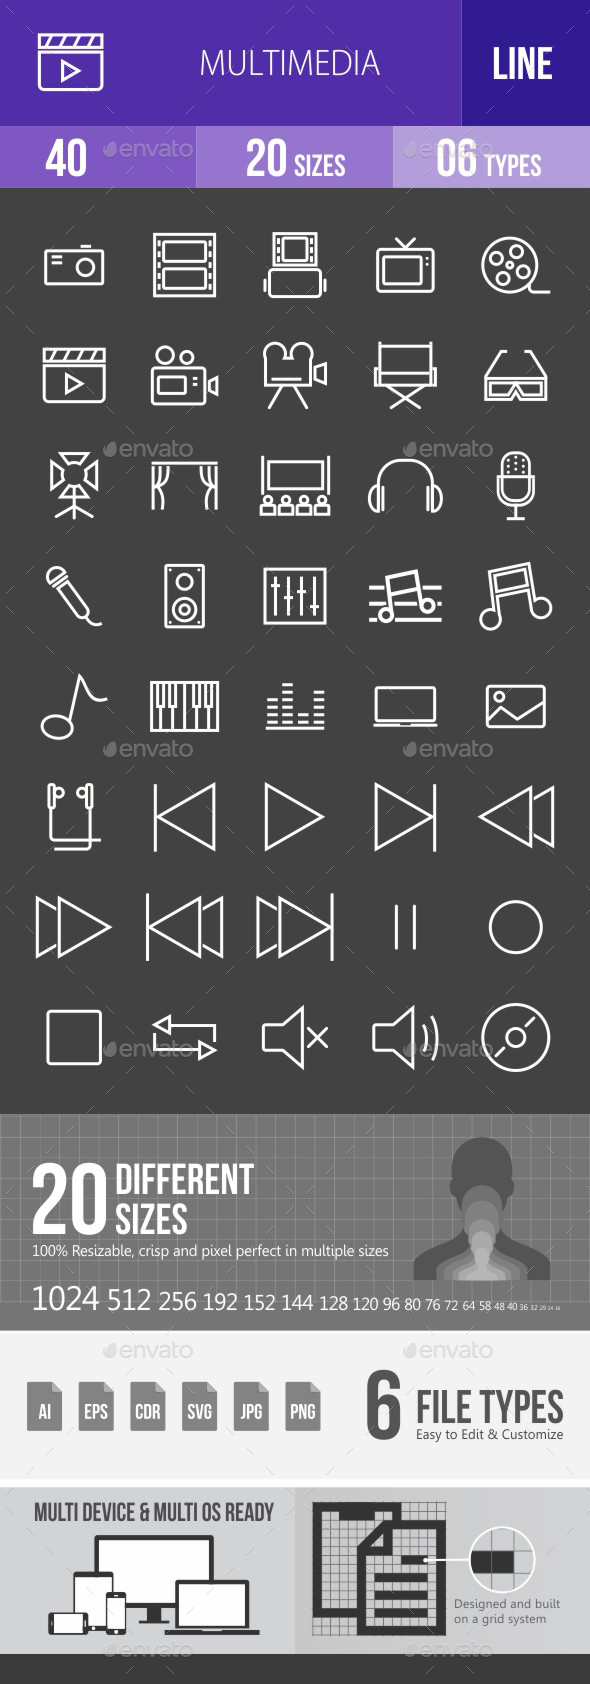 Multimedia Line Inverted Icons - Icons